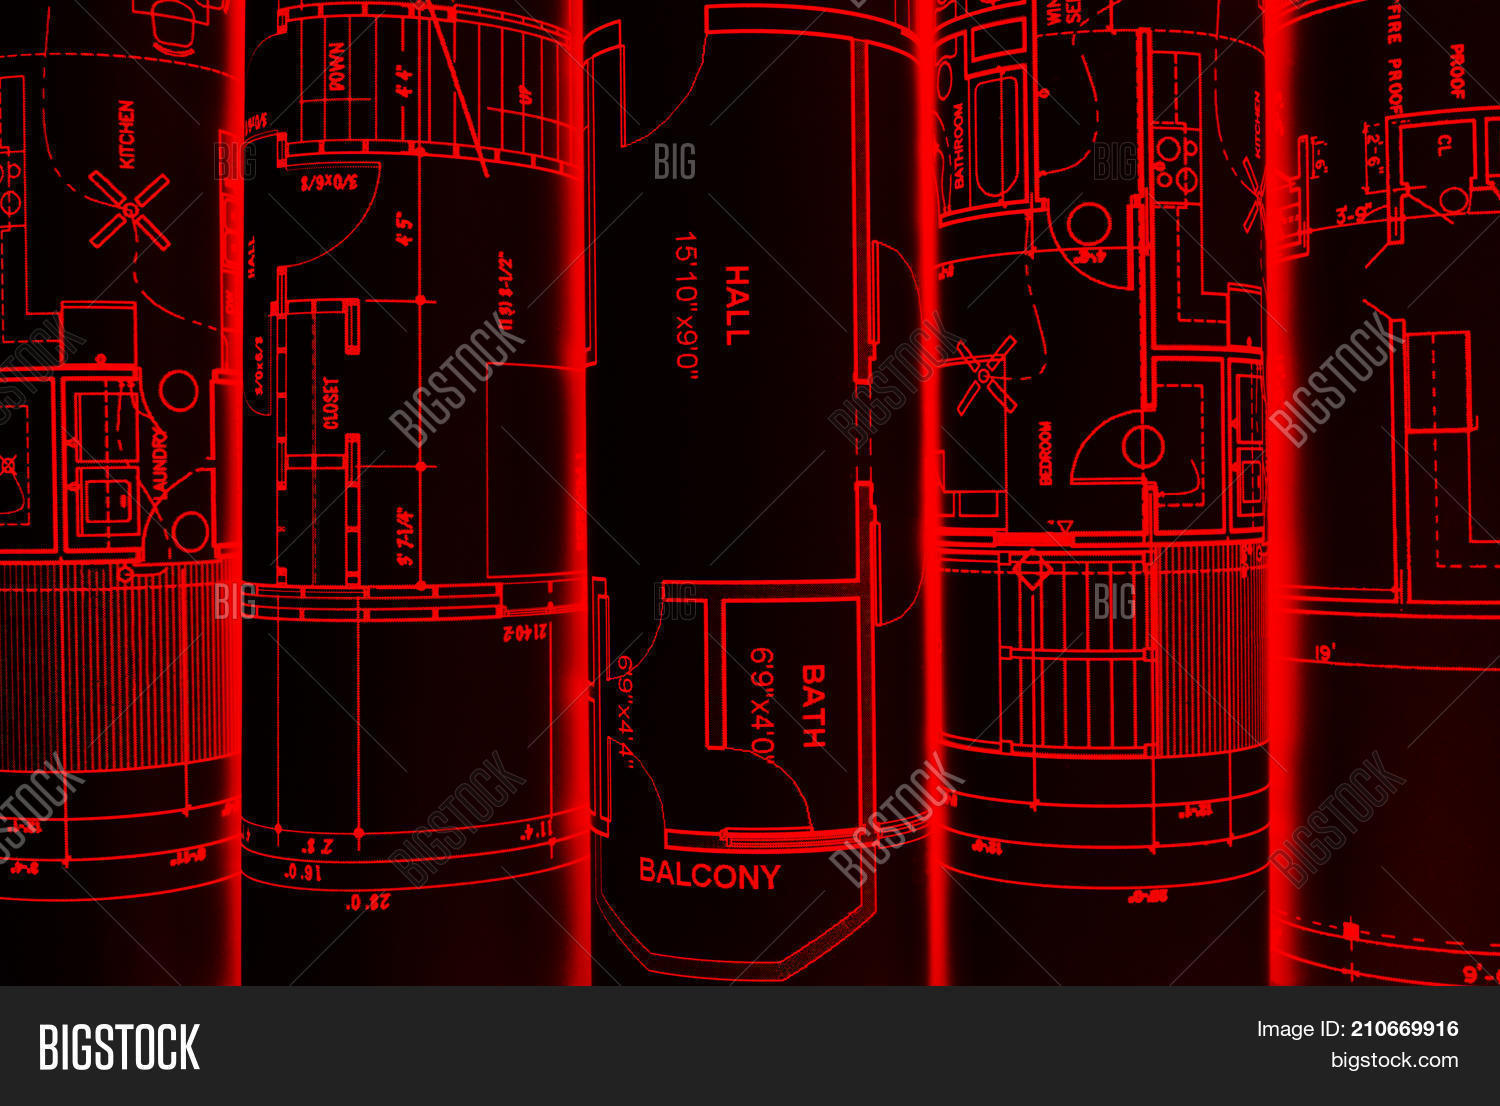 Architectural image photo free trial bigstock architectural blueprints and blueprint rolls and a drawing instruments on the worktable drawing compass plans malvernweather Gallery